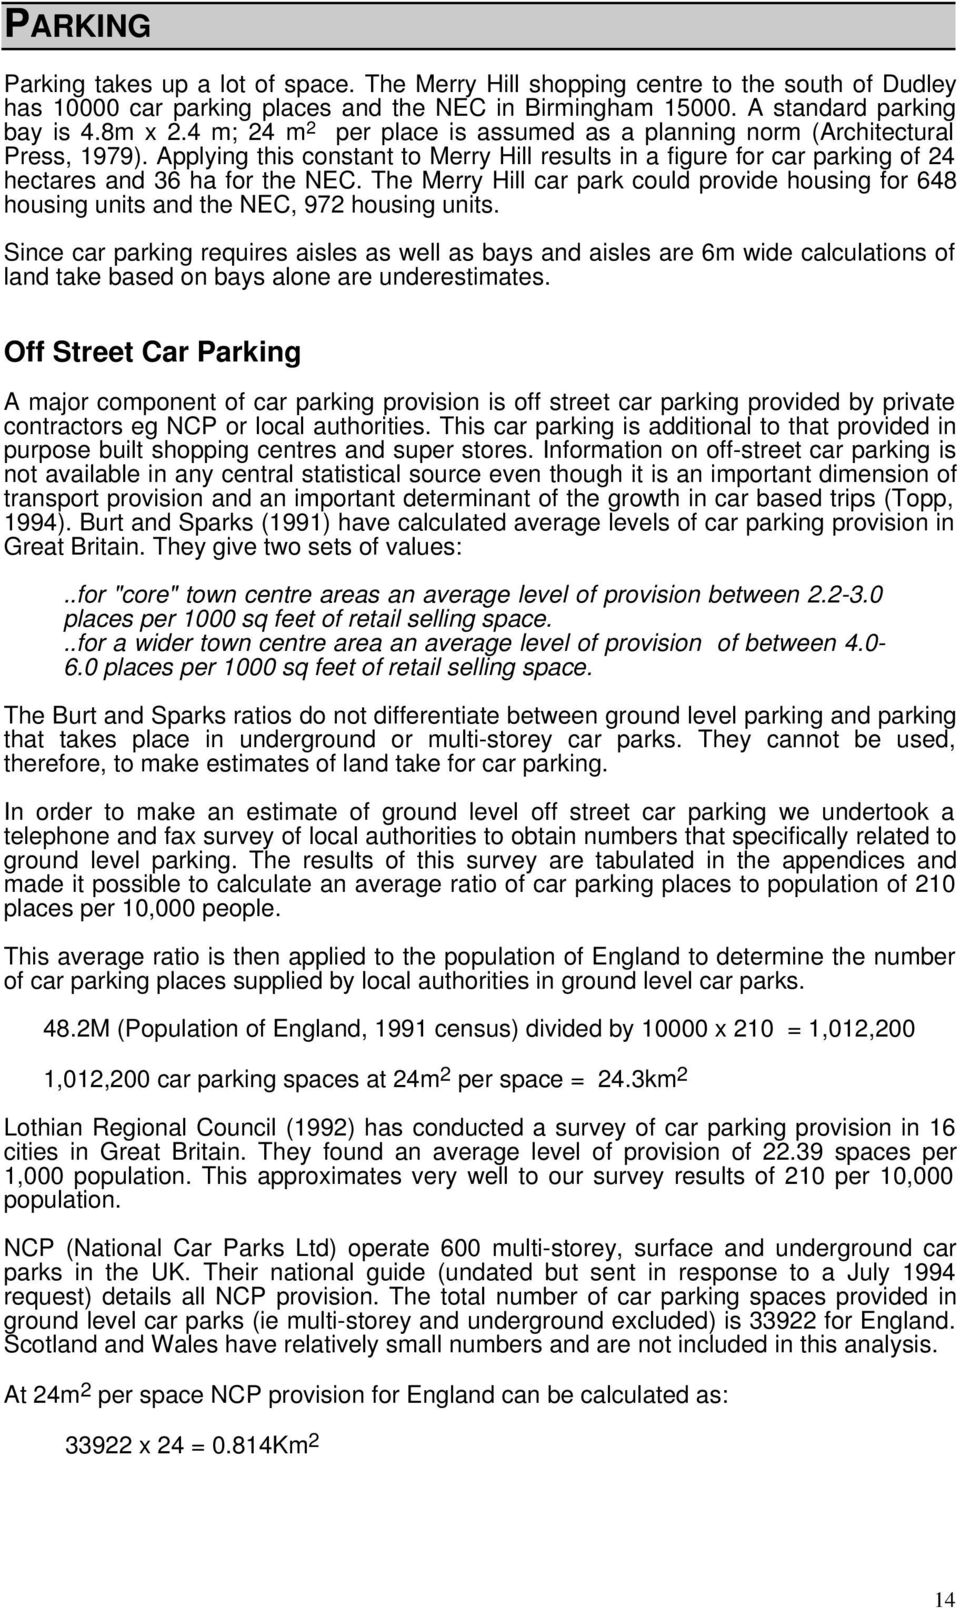 The Merry Hill car park could provide housing for 648 housing units and the NEC, 972 housing units.